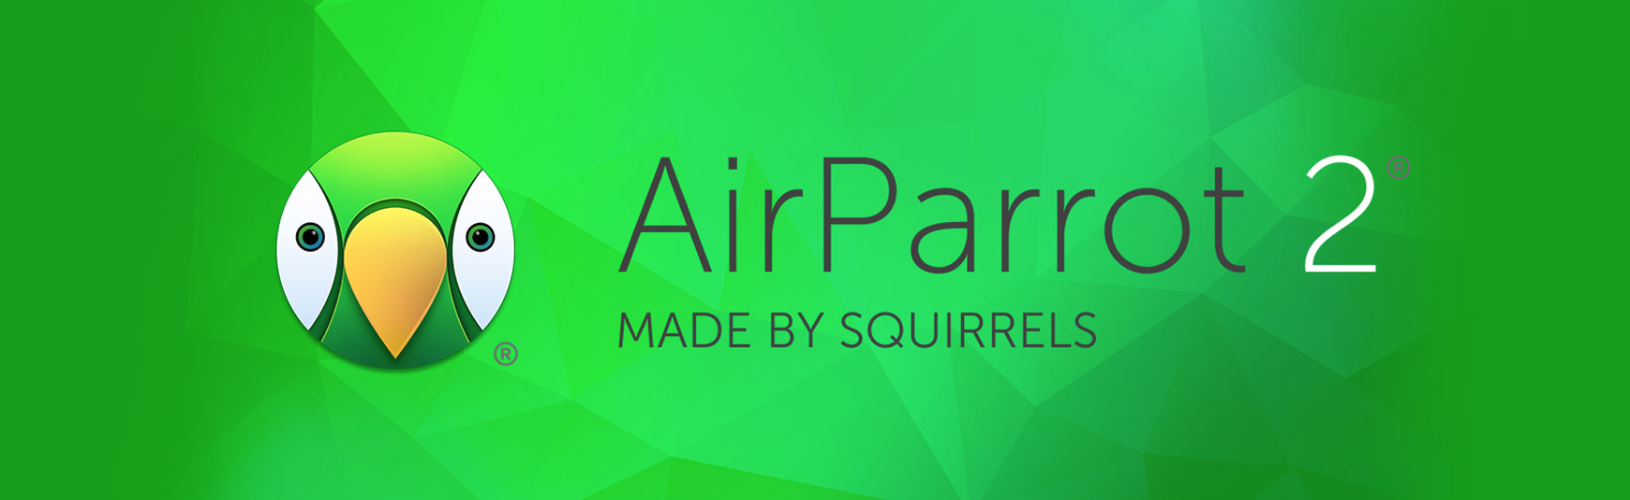 Mirror your Mac's display to the new Apple TV with AirParrot 2